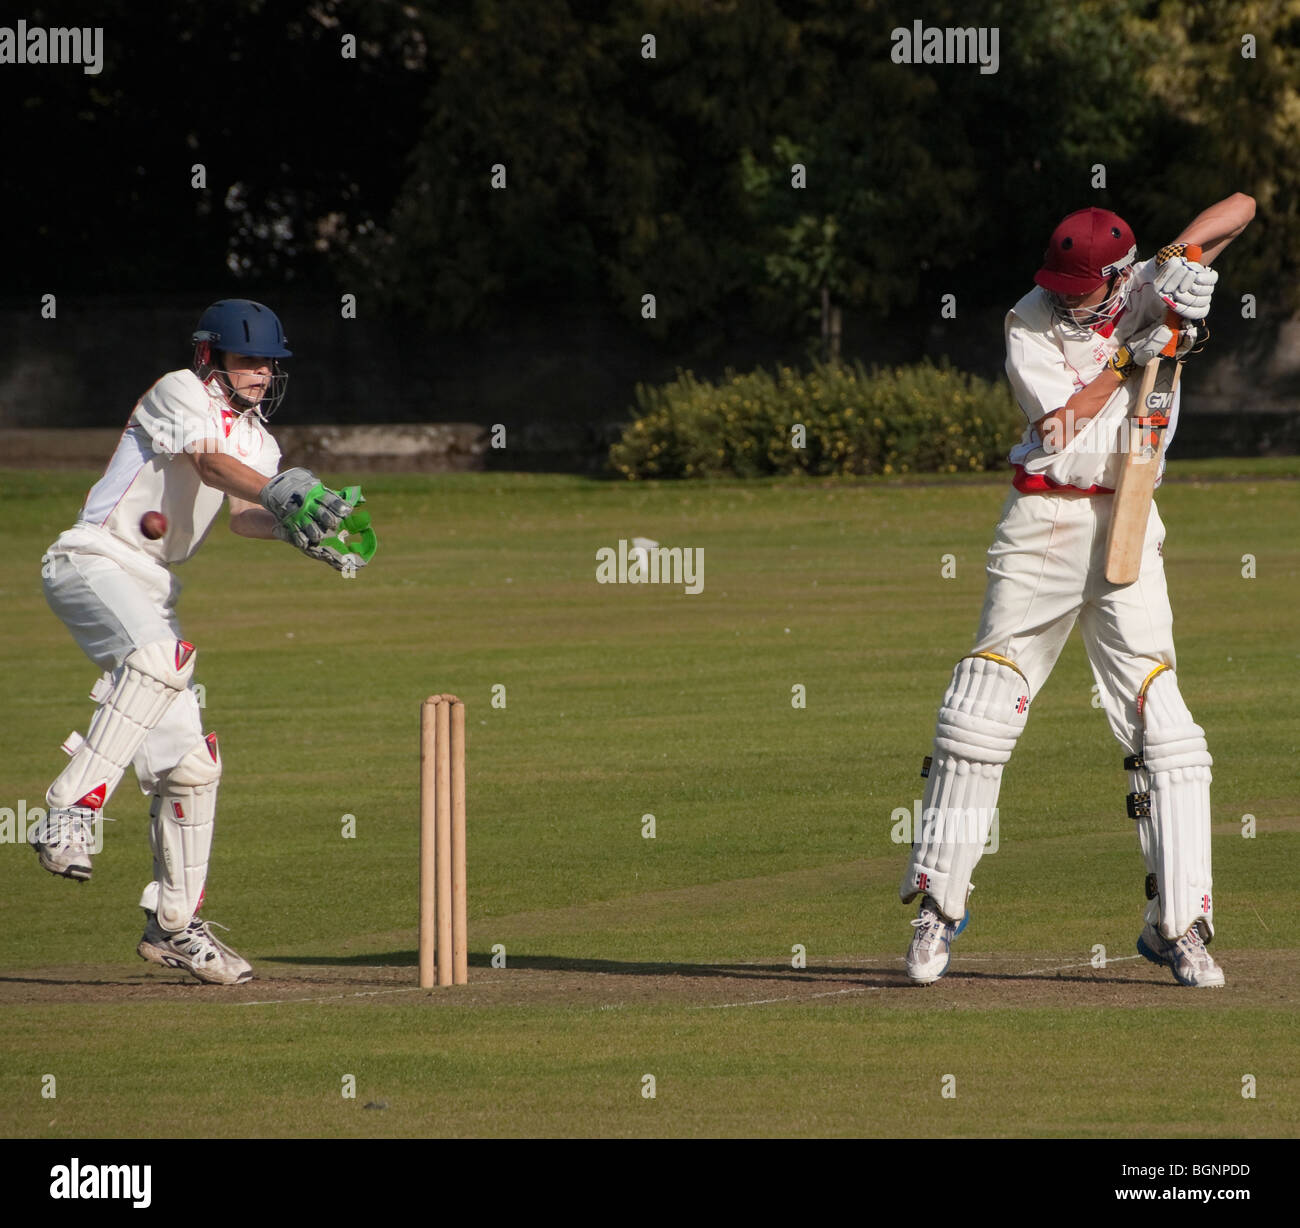 An Under-15s Scottish cricket match in Kelso, Scottish Borders, held in a public park Stock Photo